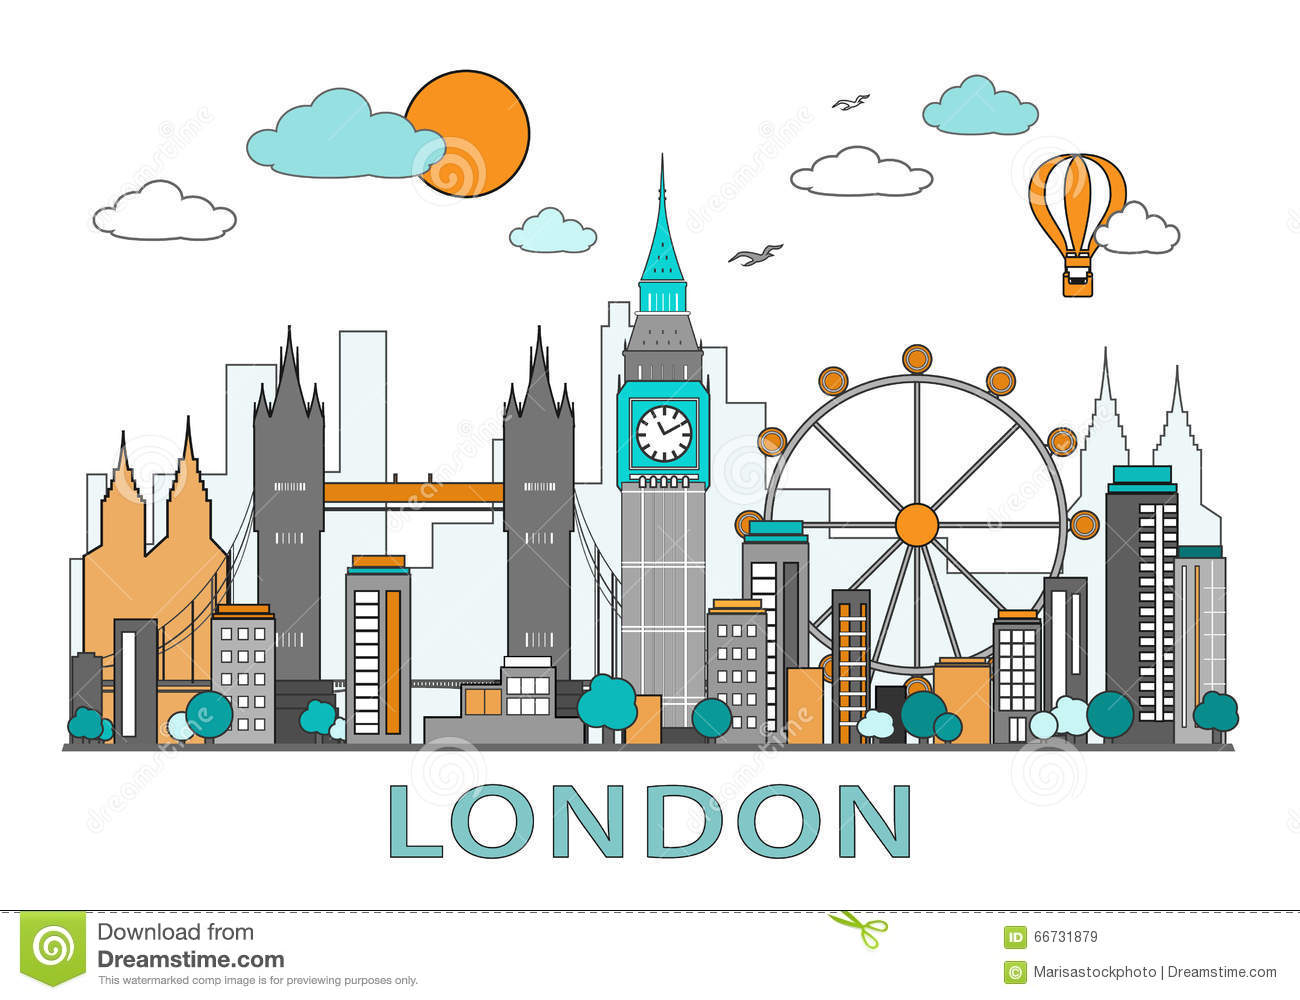 Thin line flat design of London city. Modern London skyline vector illustration, isolated.